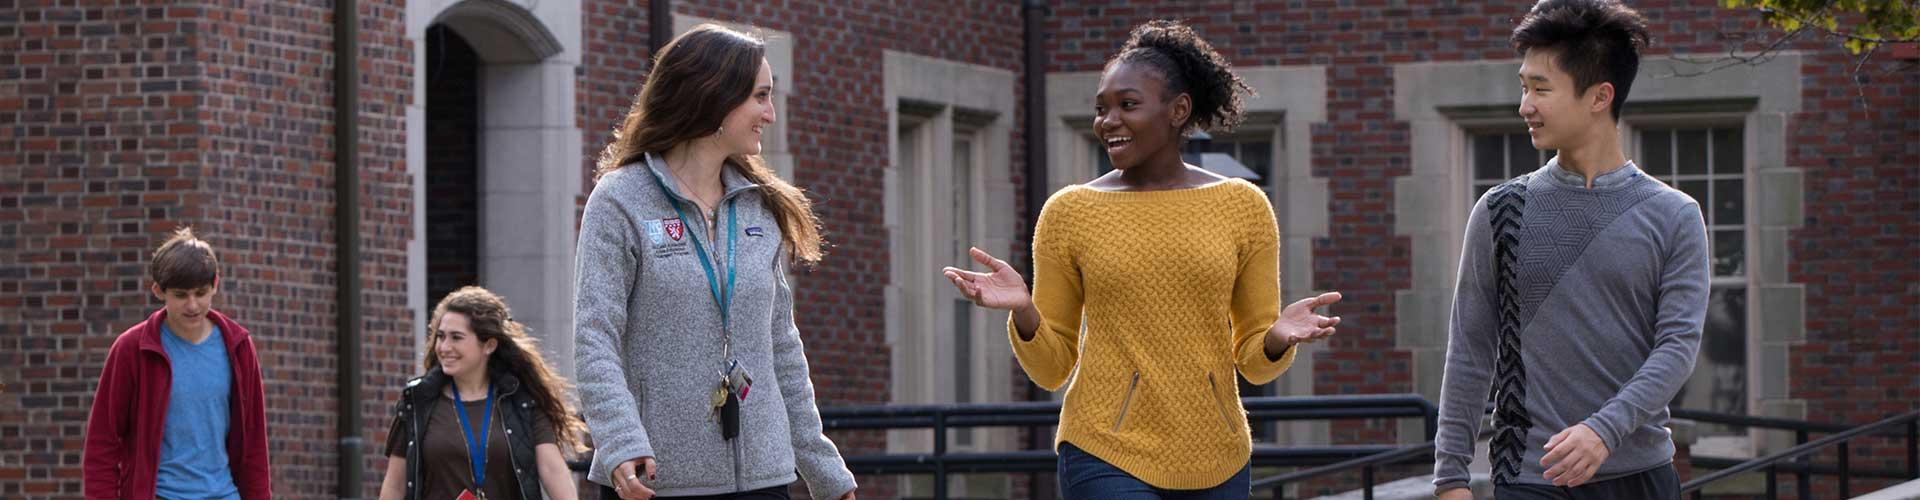 Teens walk outside with mental health clinicians